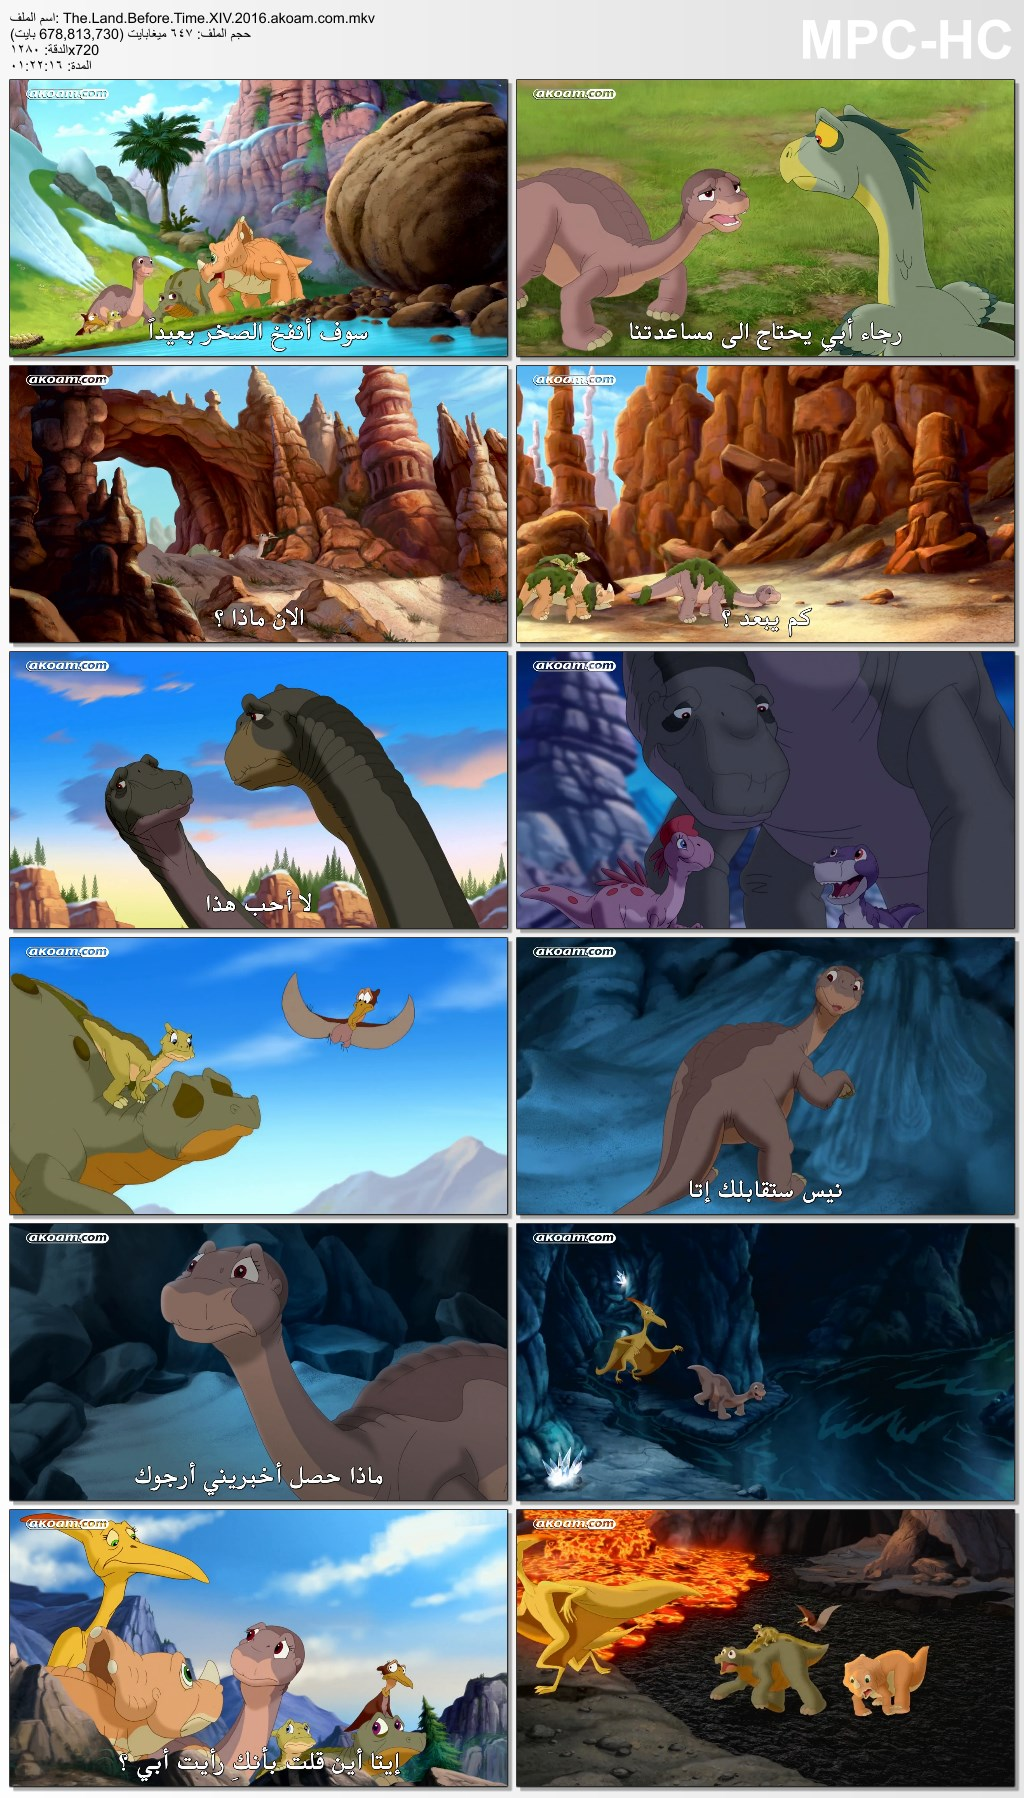 الانيميشن,المغامرات,العائلي,The Land Before Time XIV: Journey of the Heart,The Land Before Time